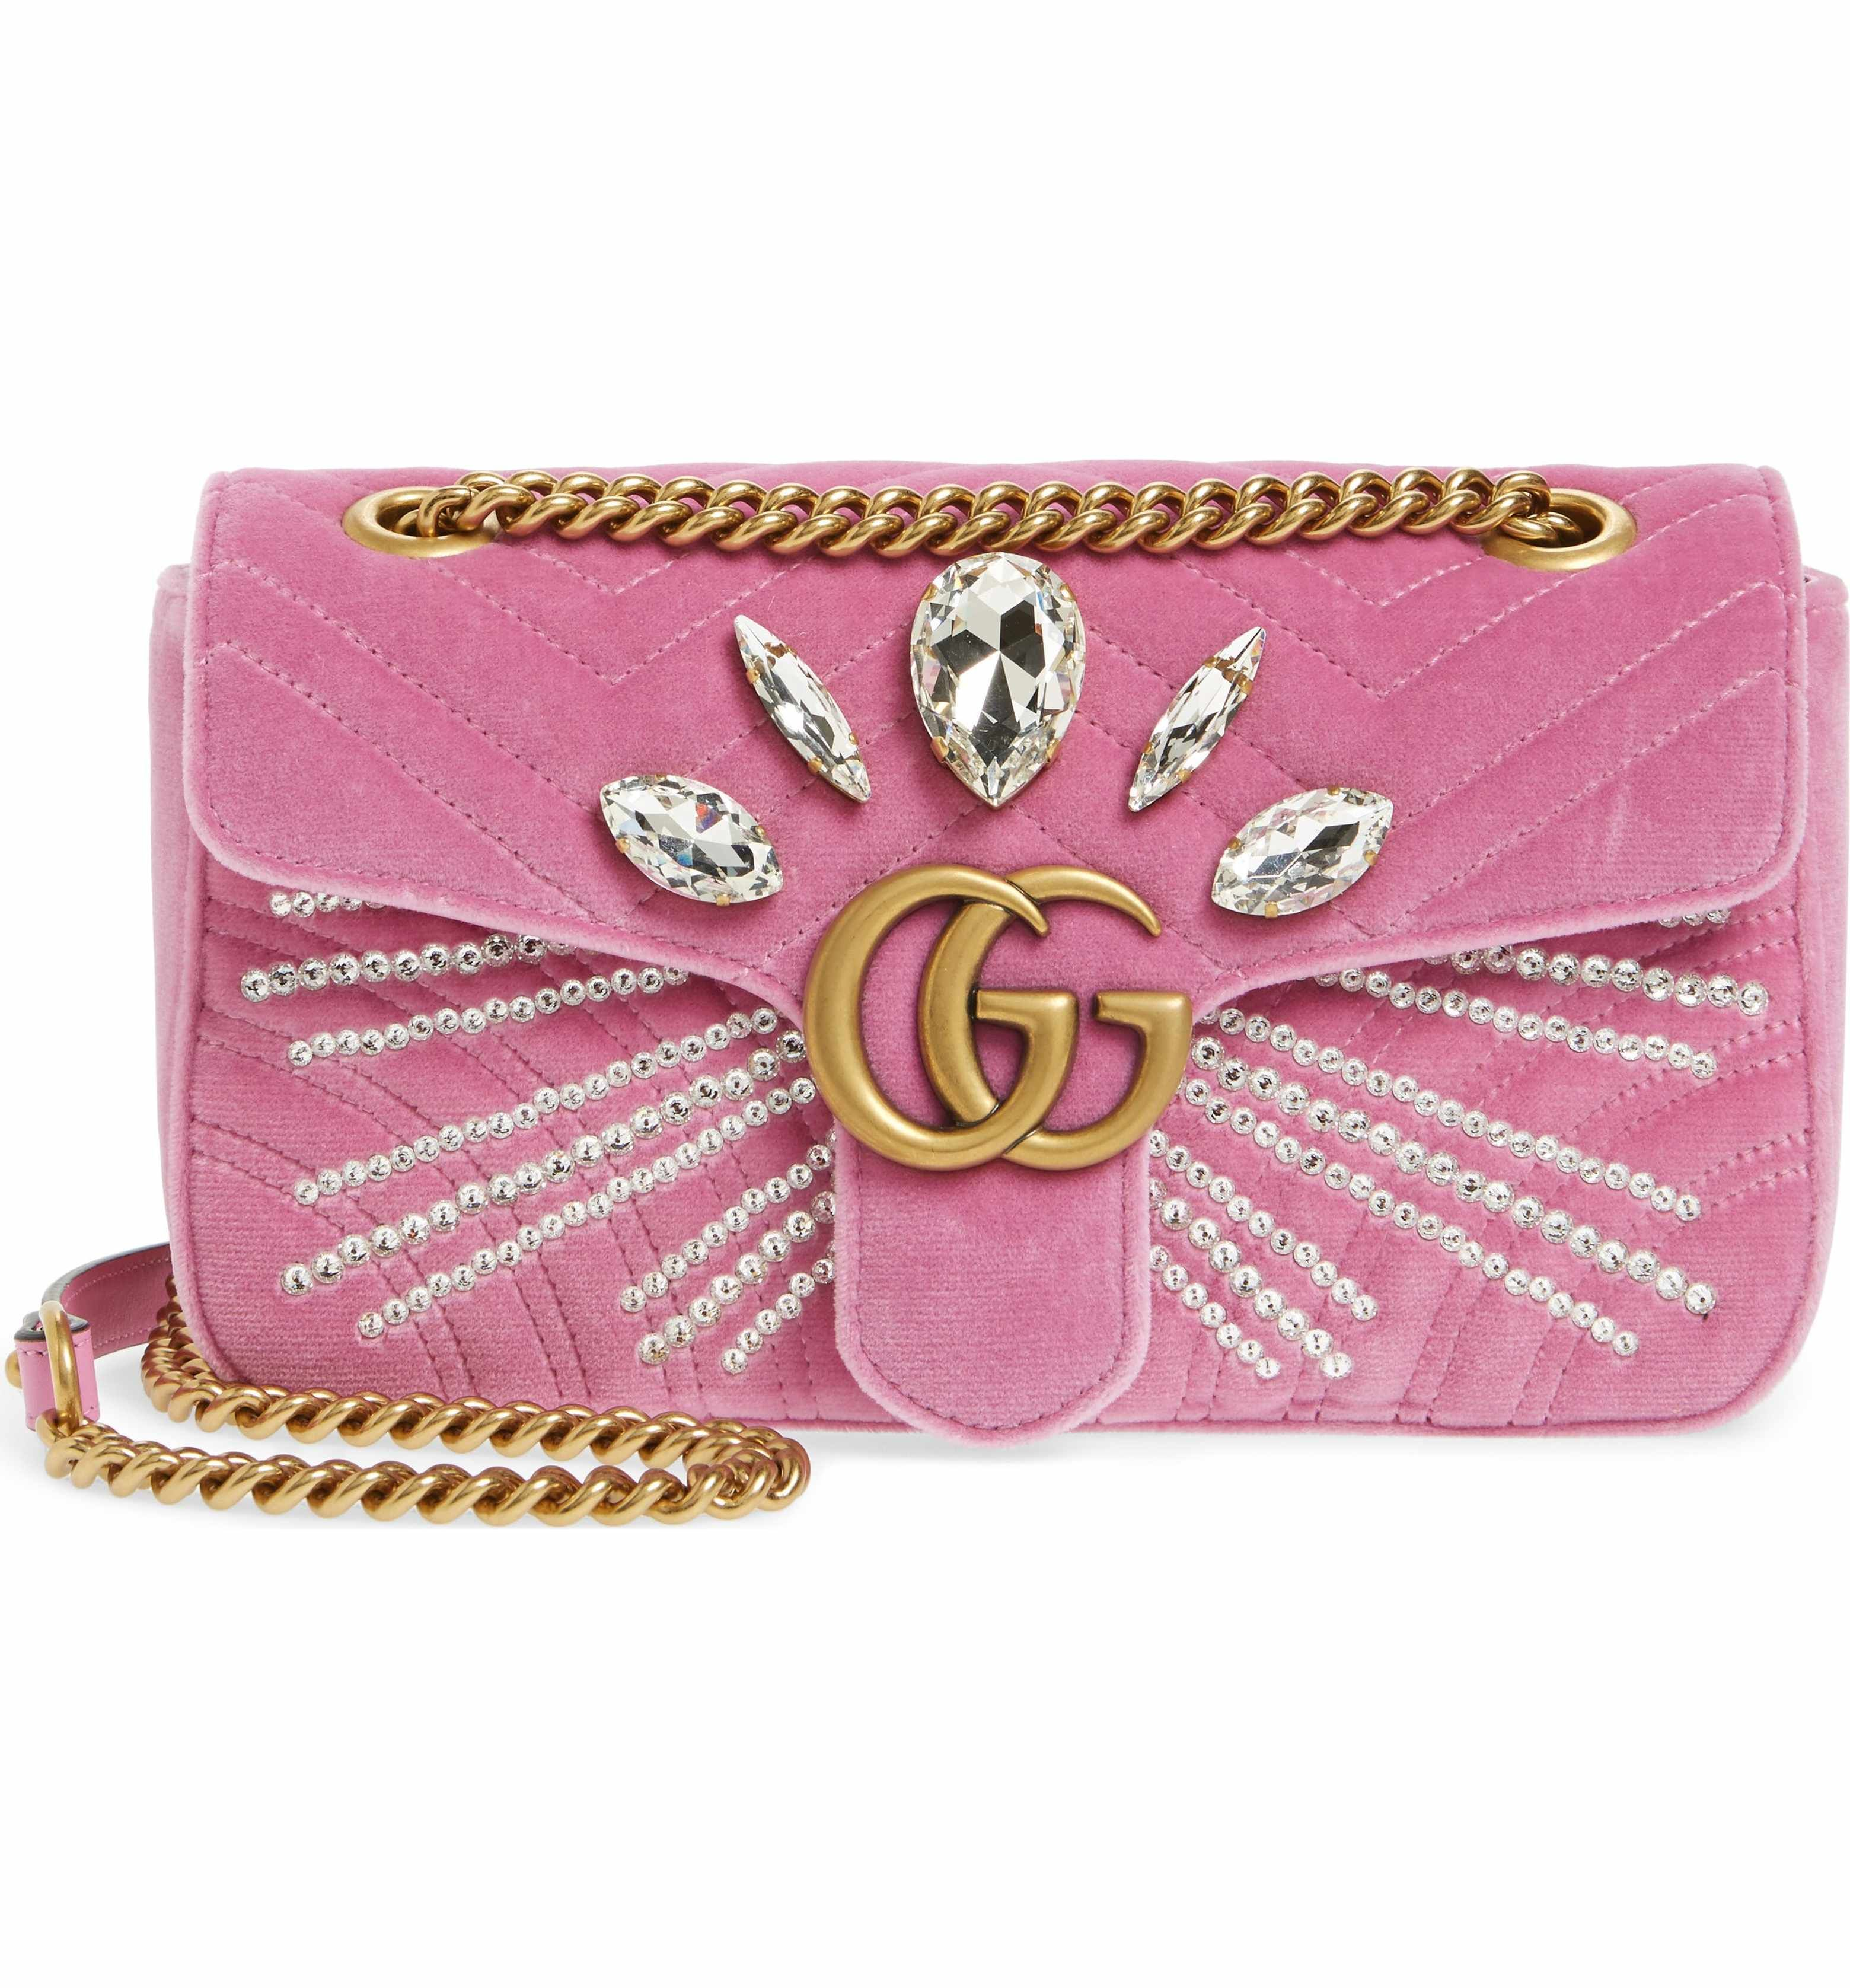 c398877847467f Main Image - Gucci GG Marmont 2.0 Crystal Embellished Velvet Crossbody Bag